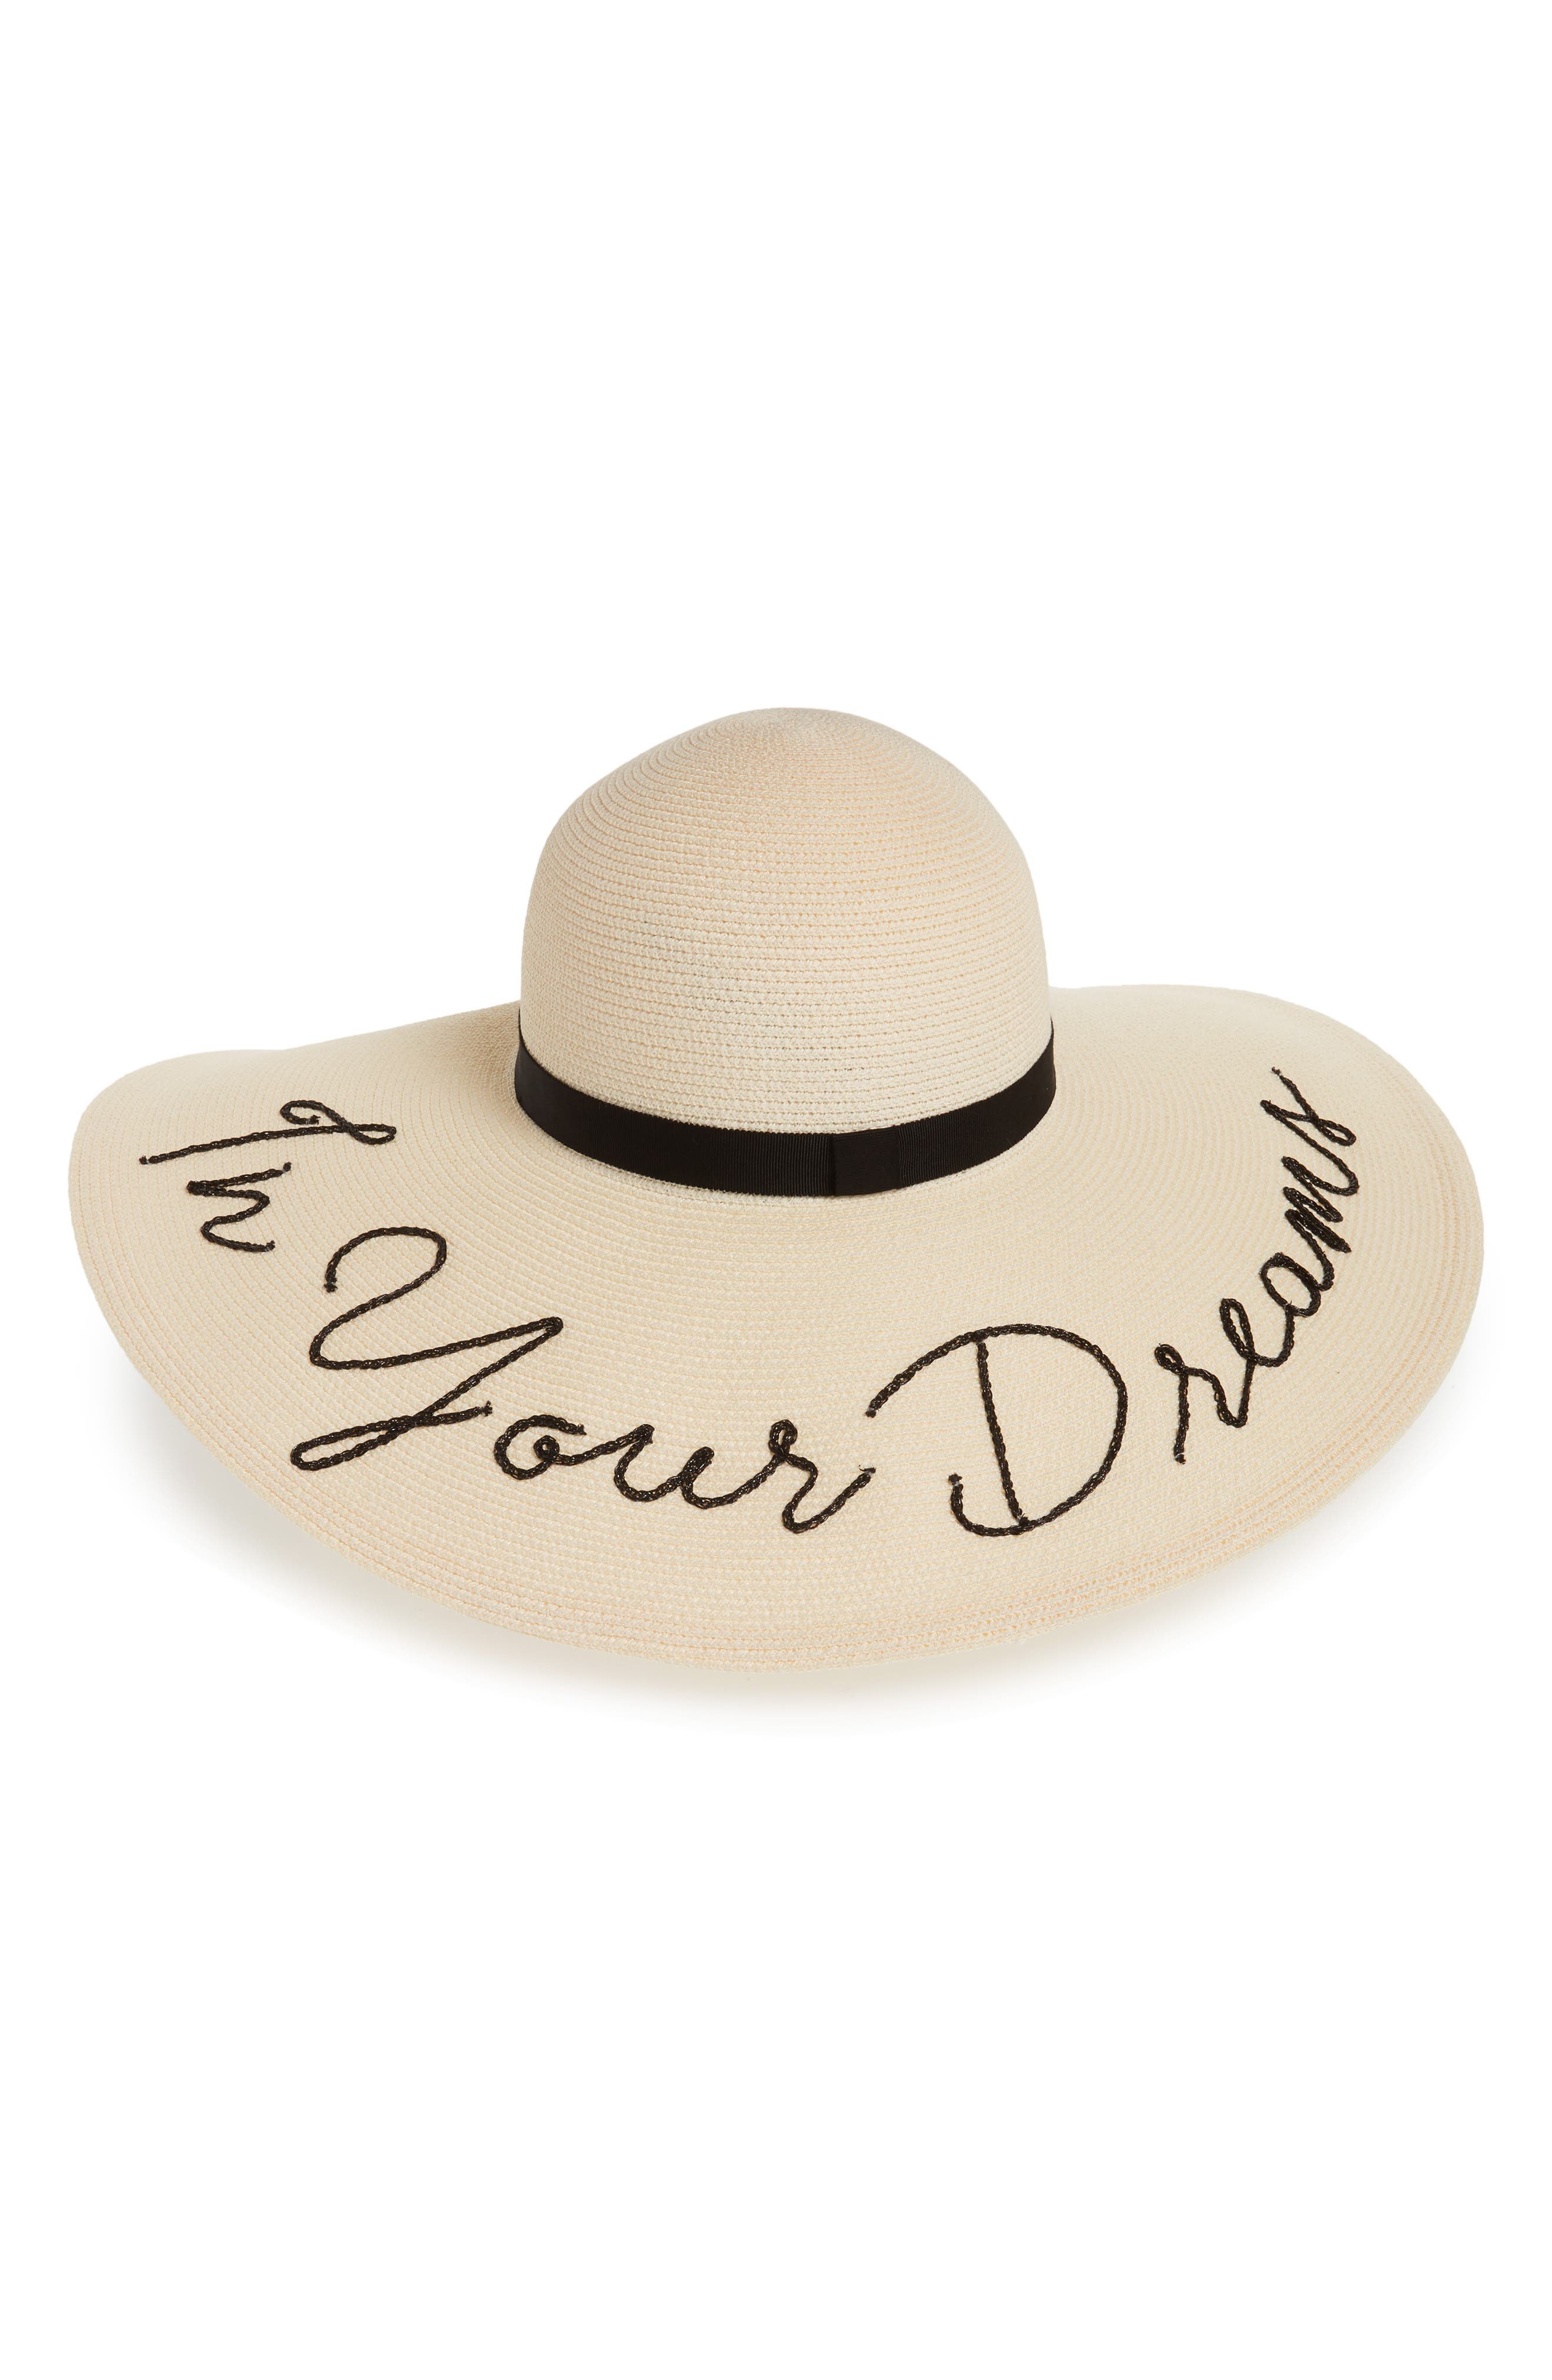 Bunny In Your Dreams Sun Hat,                         Main,                         color, Ivory